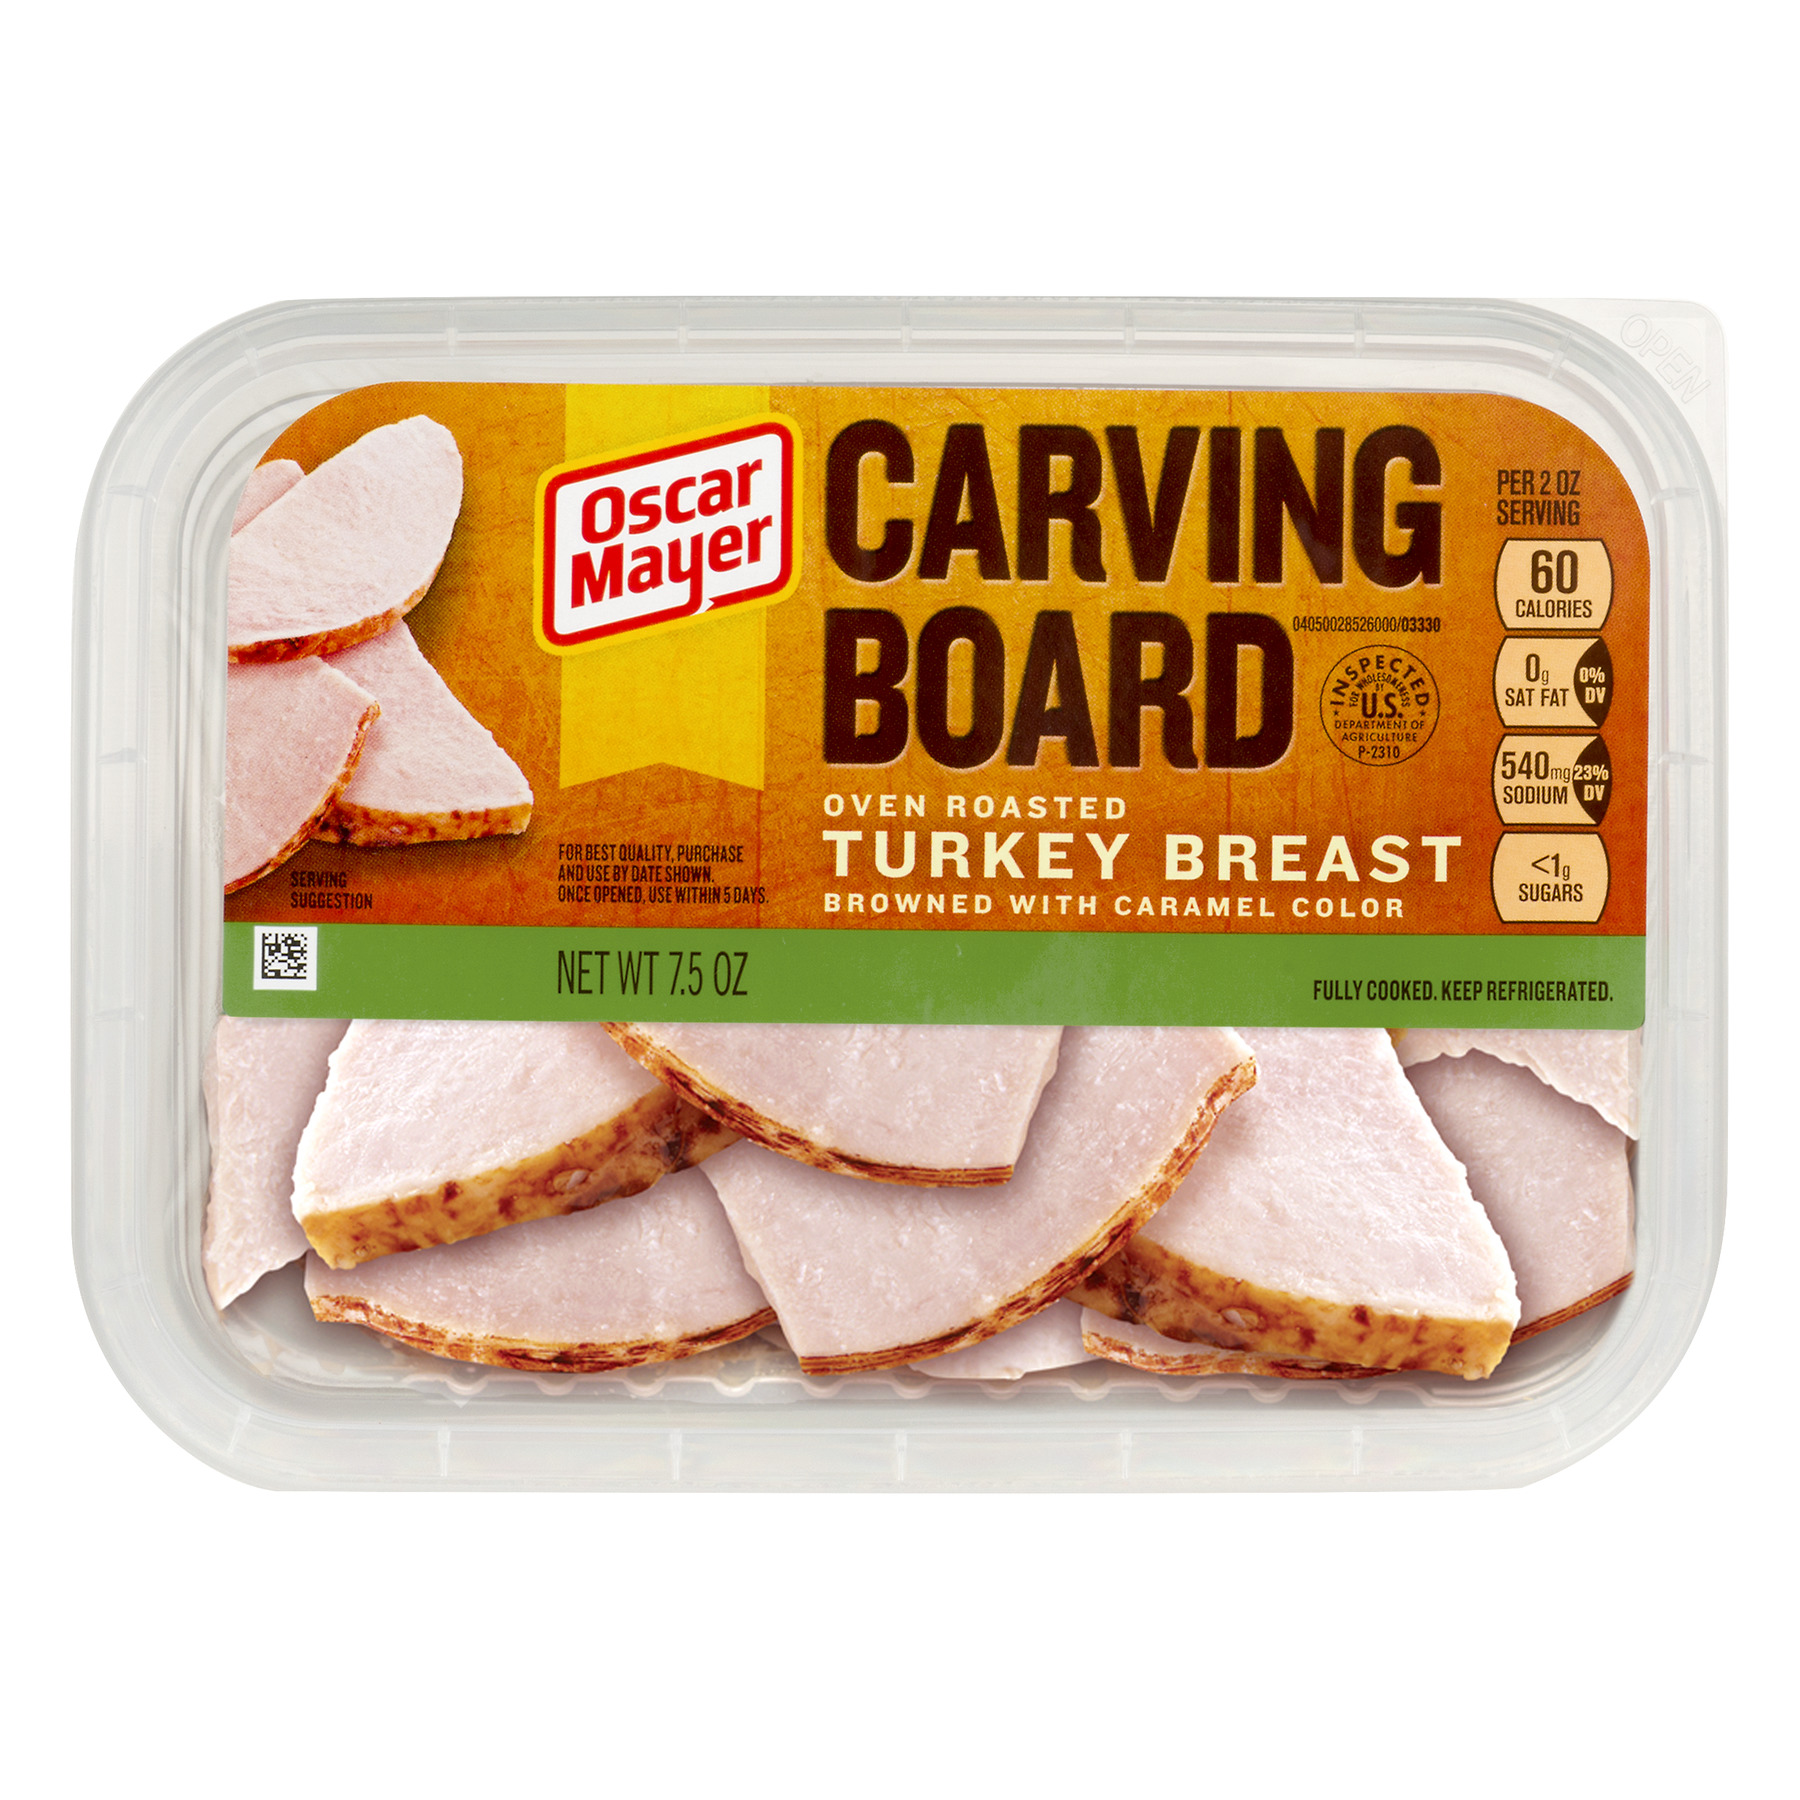 Oscar Mayer Carving Board Oven Roasted Turkey Breast